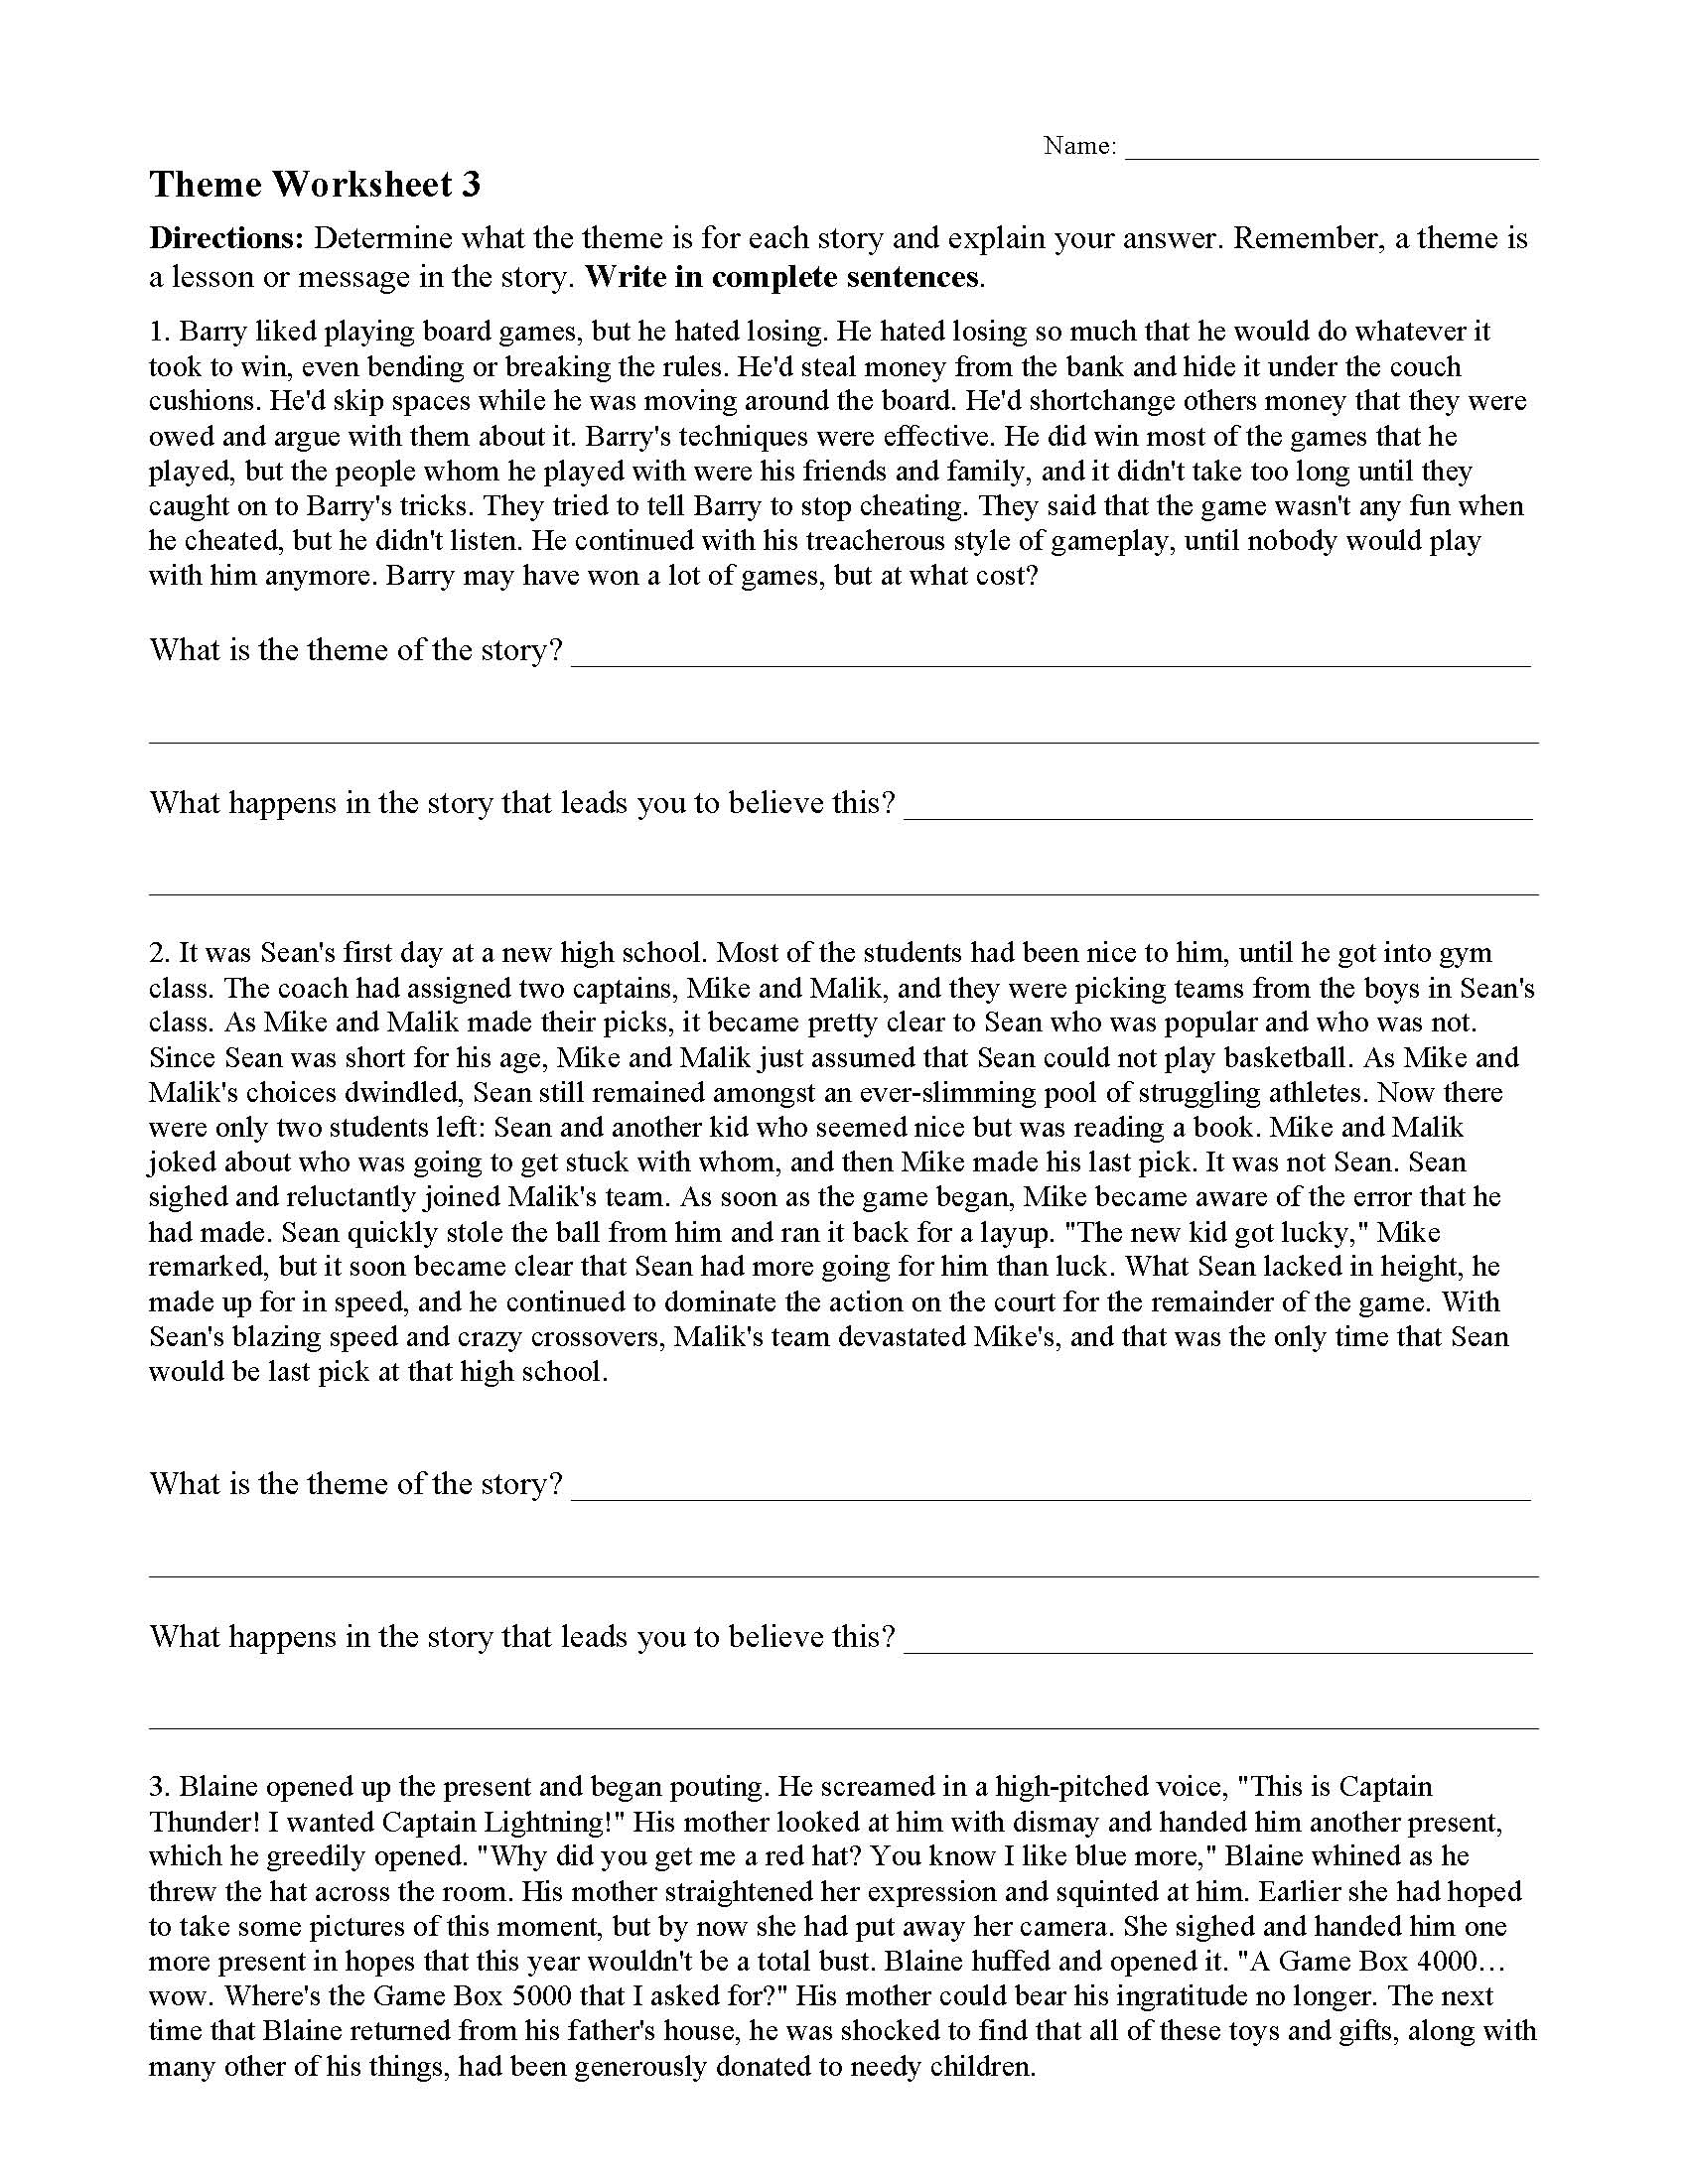 - Reading Worksheets With Answers On Them Printable Worksheets And